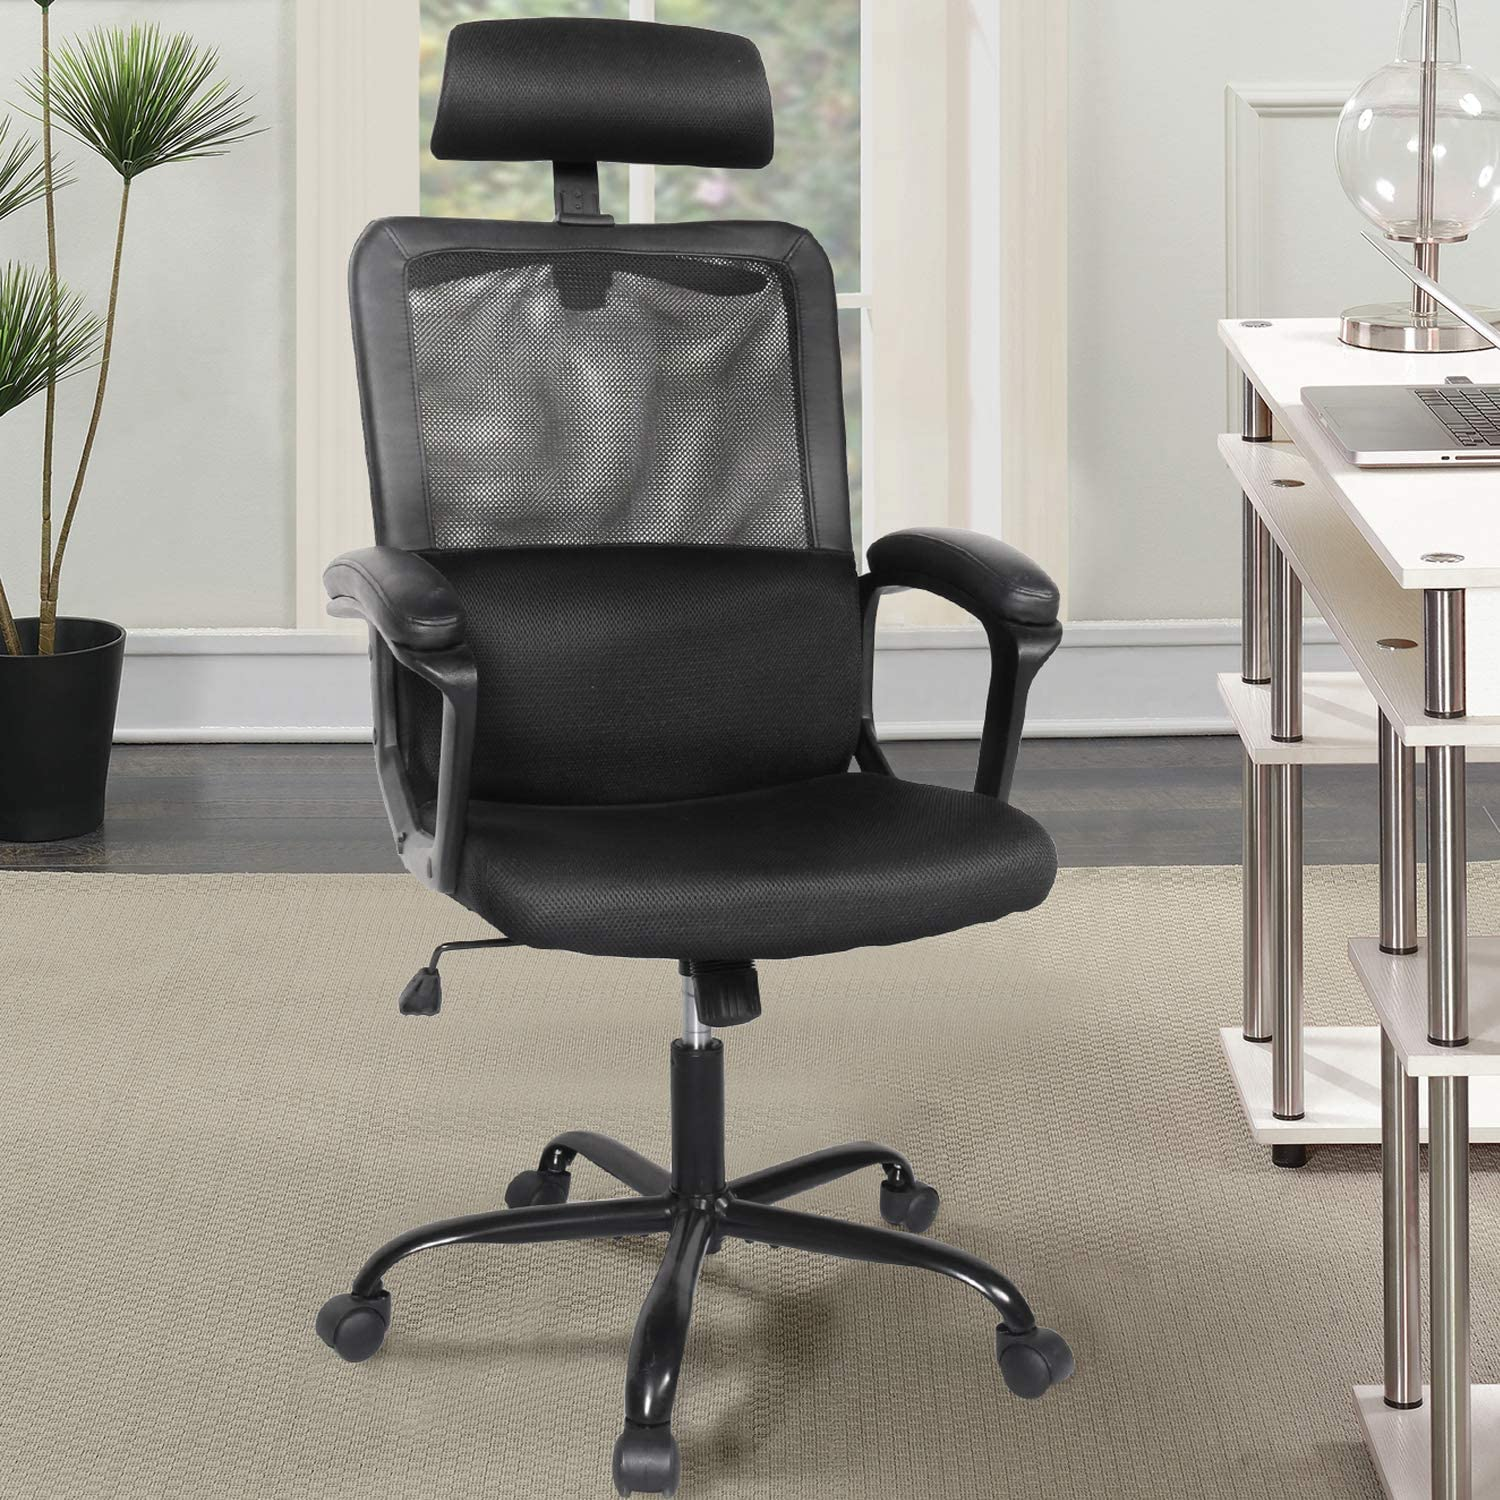 [US Direct] Office Chair, High Back Ergonomic Mesh Desk Office Chair with Padding Armrest and Adjustable Headrest Black